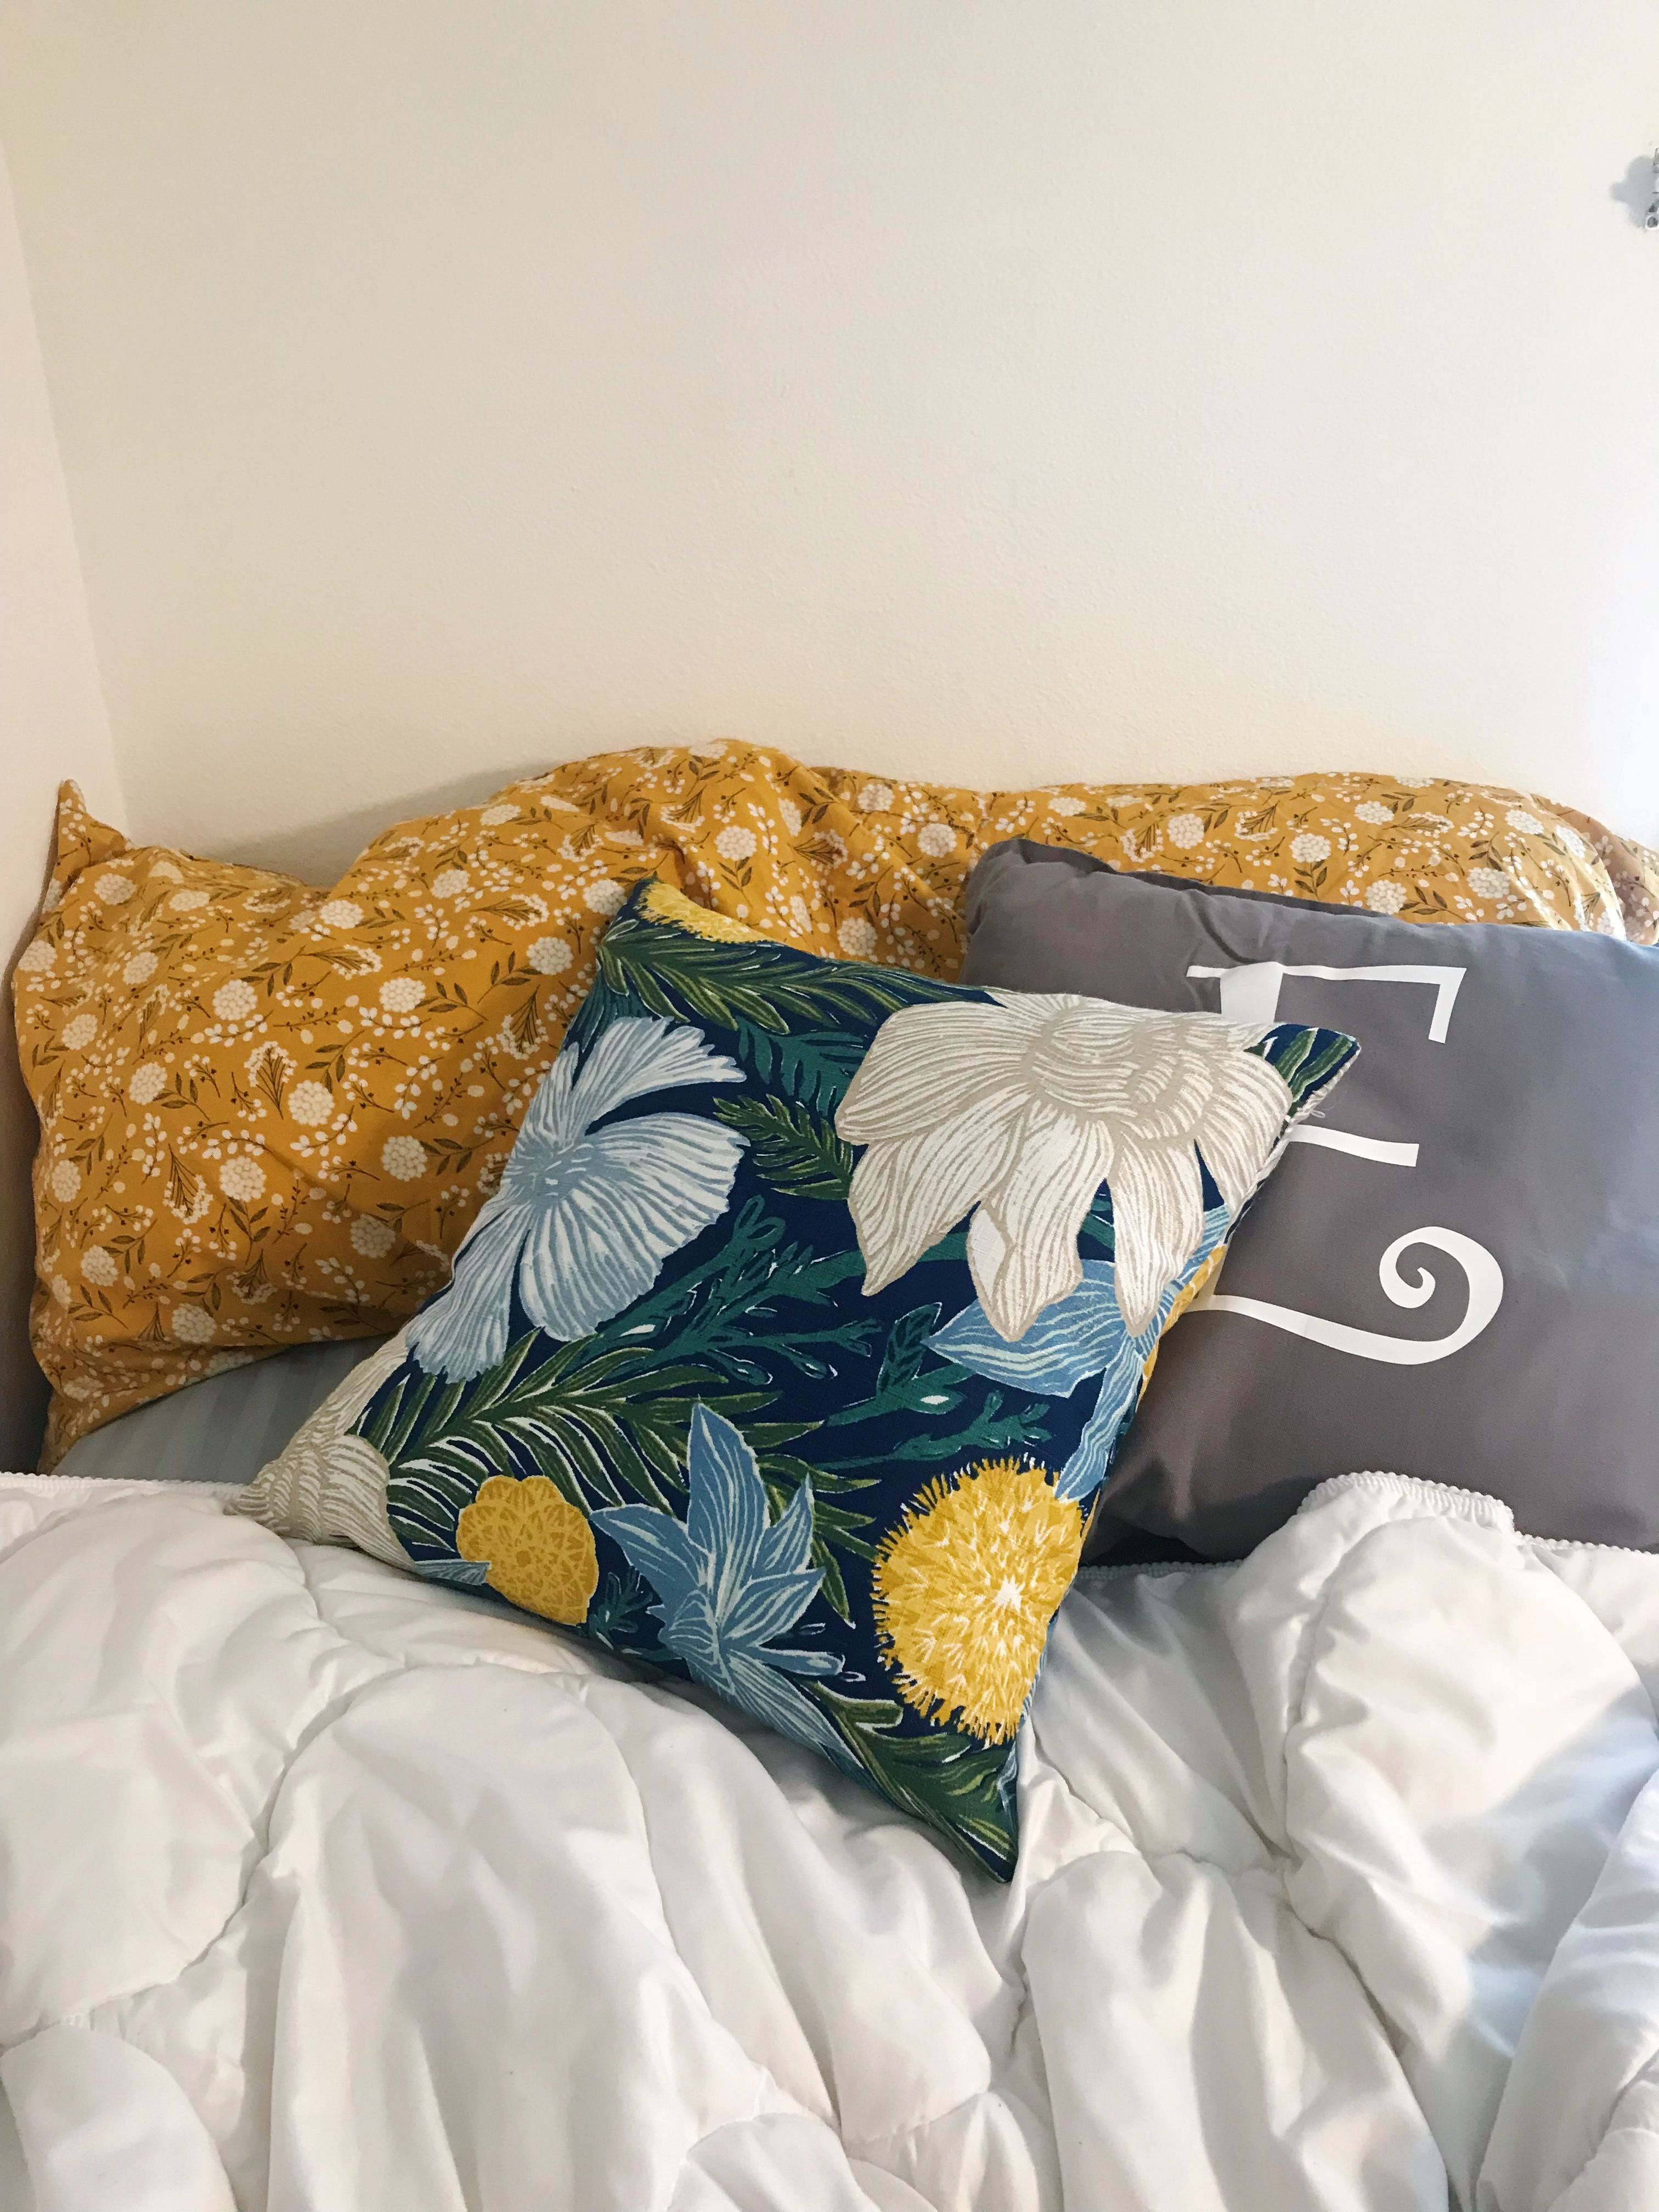 My Pillows And Blanket